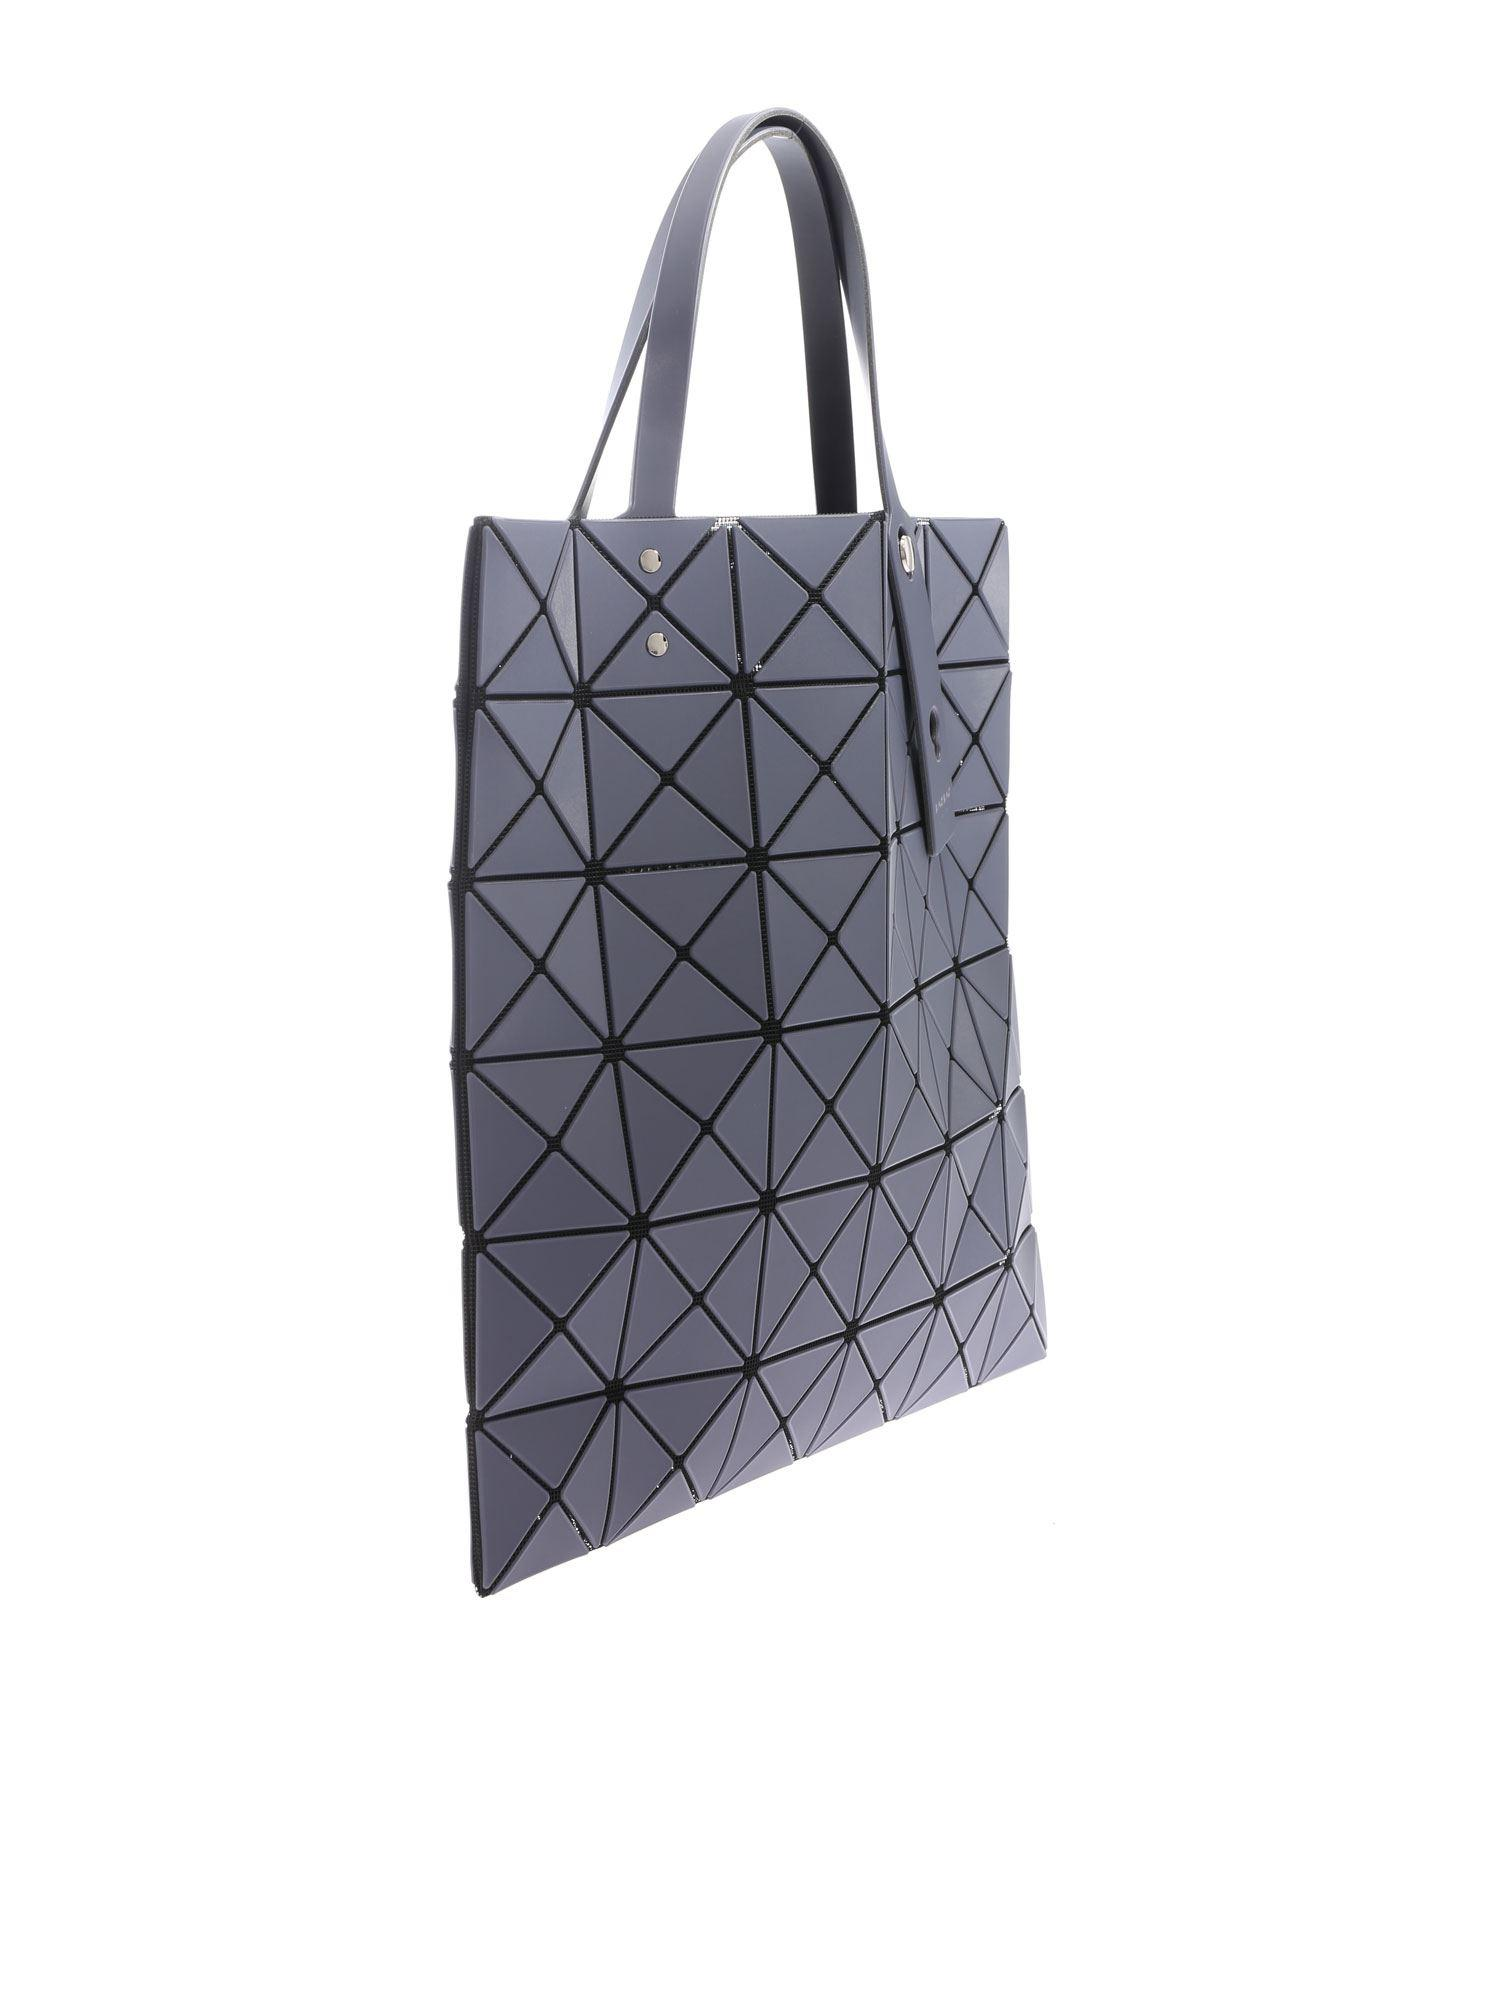 5b49bb10cb Lyst - Bao Bao Issey Miyake Lucent Frost Gray Bag With Triangle Pattern in  Gray